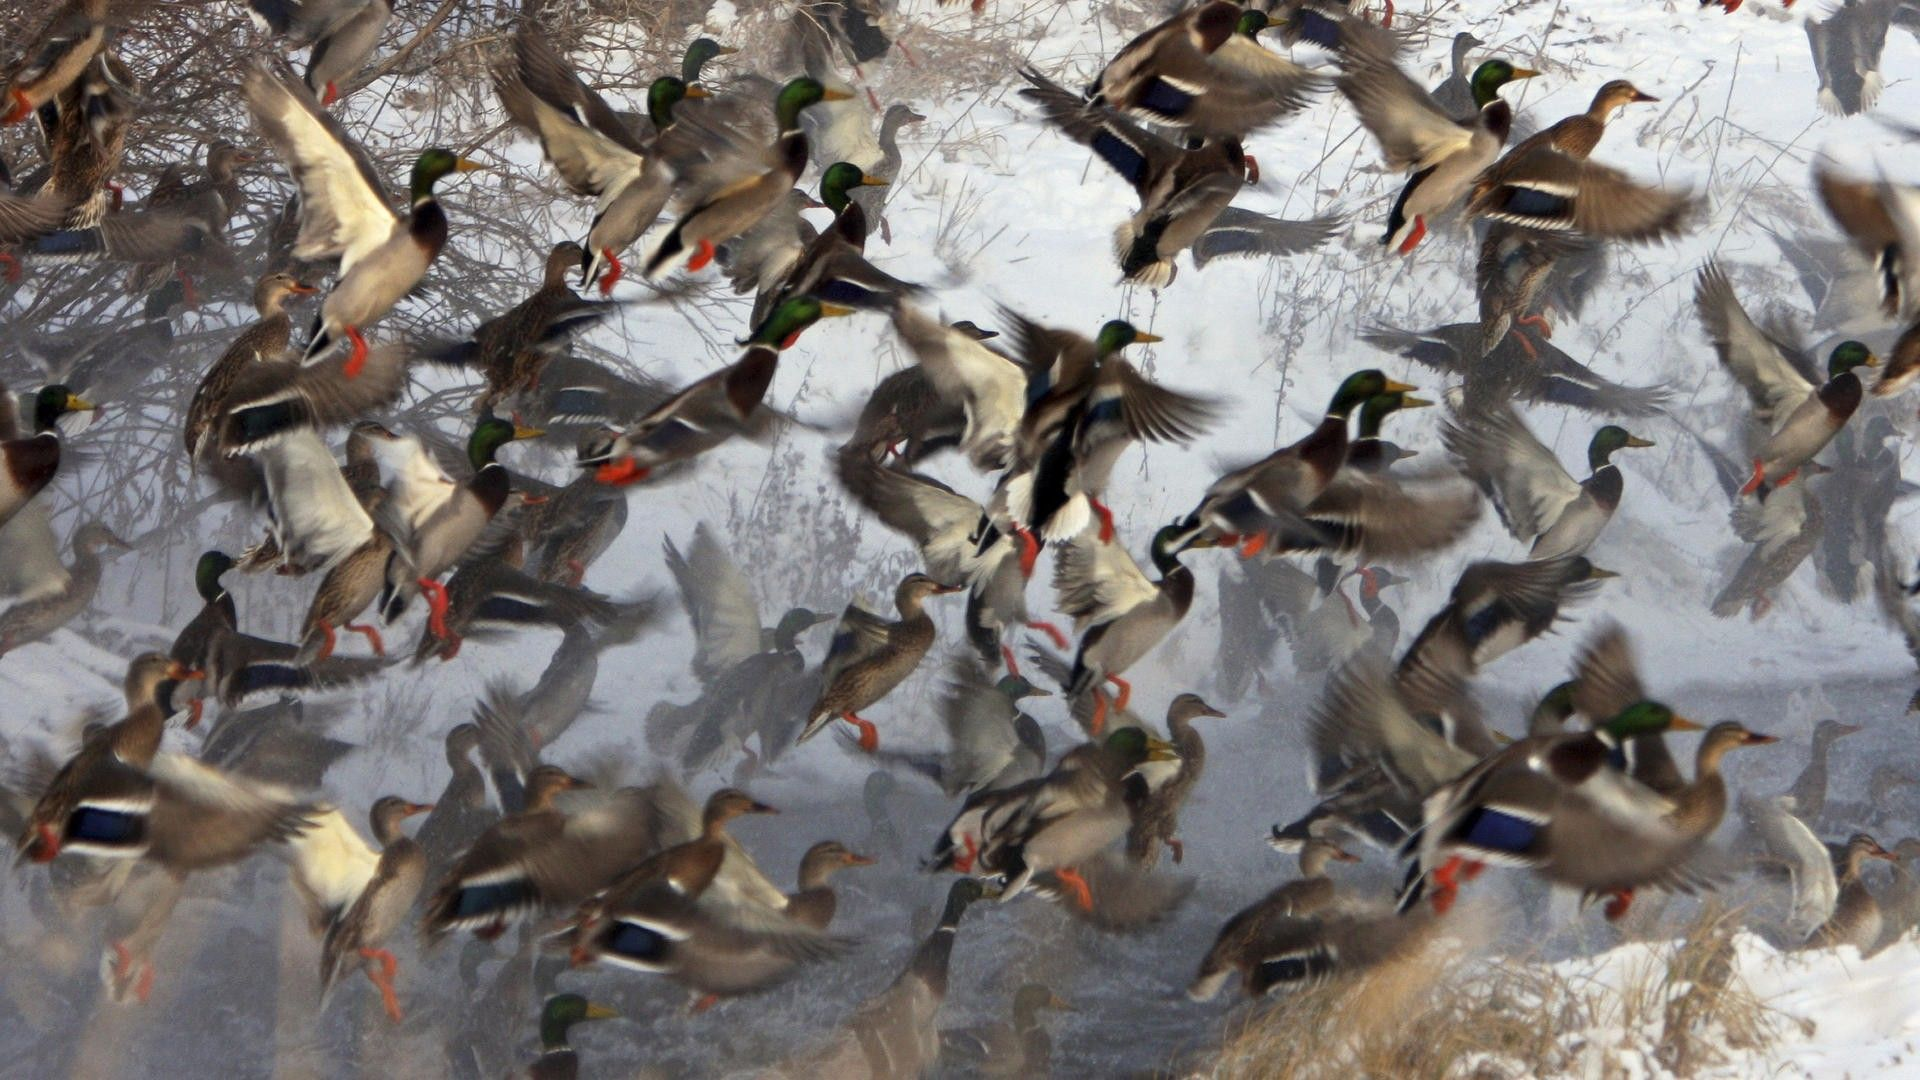 Duck Hunting Backgrounds Google Search Duck Hunting Hunting Backgrounds Hunting